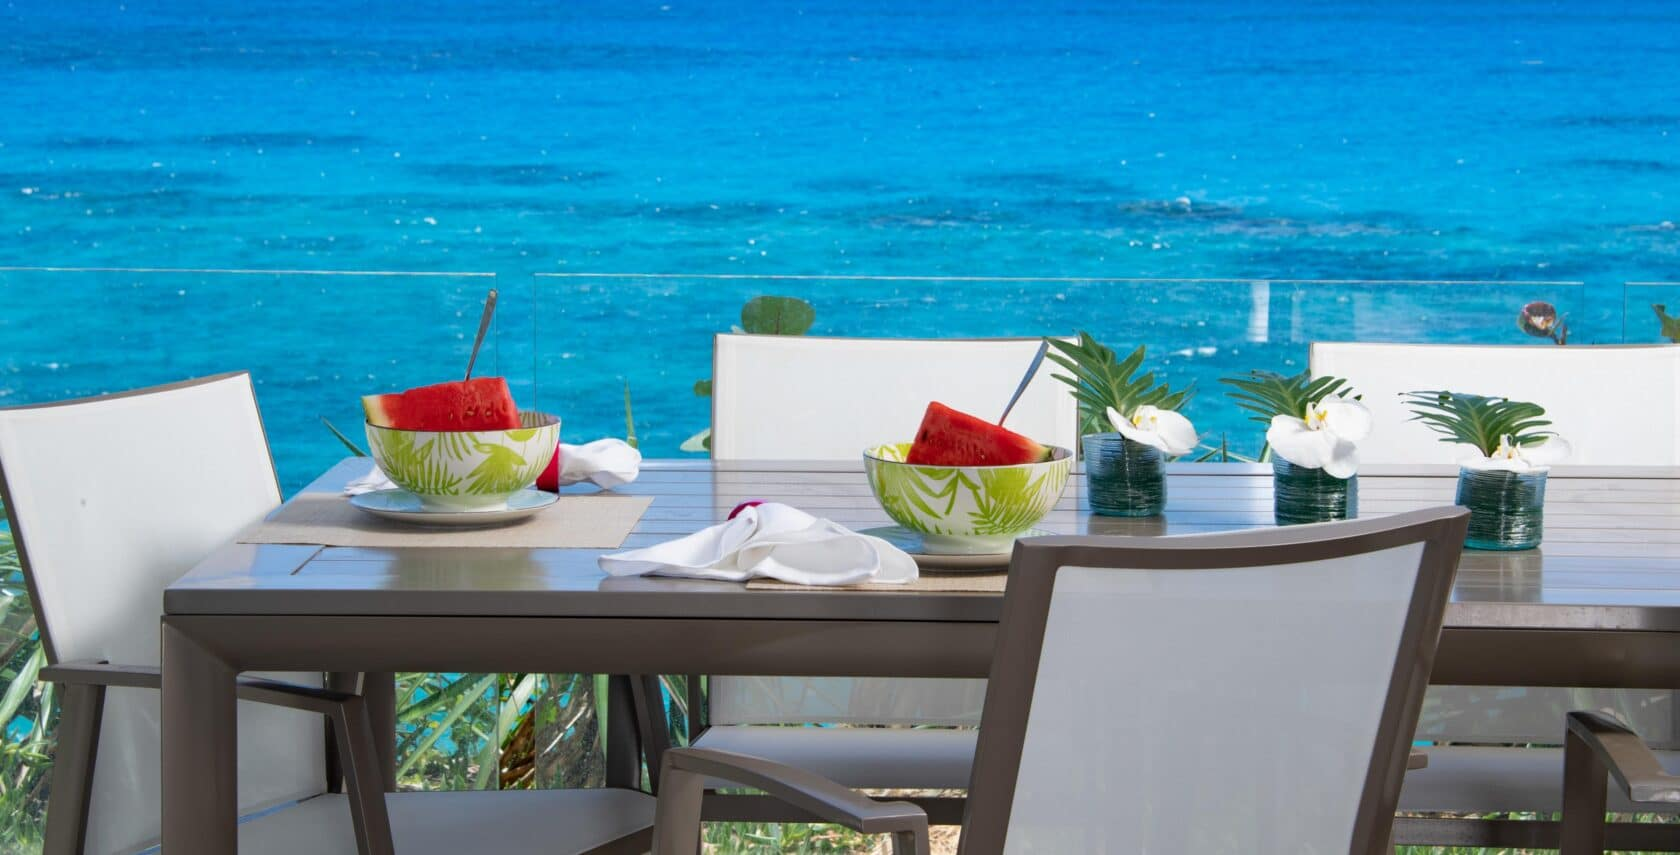 A dining table outside with a view of the ocean in the background.